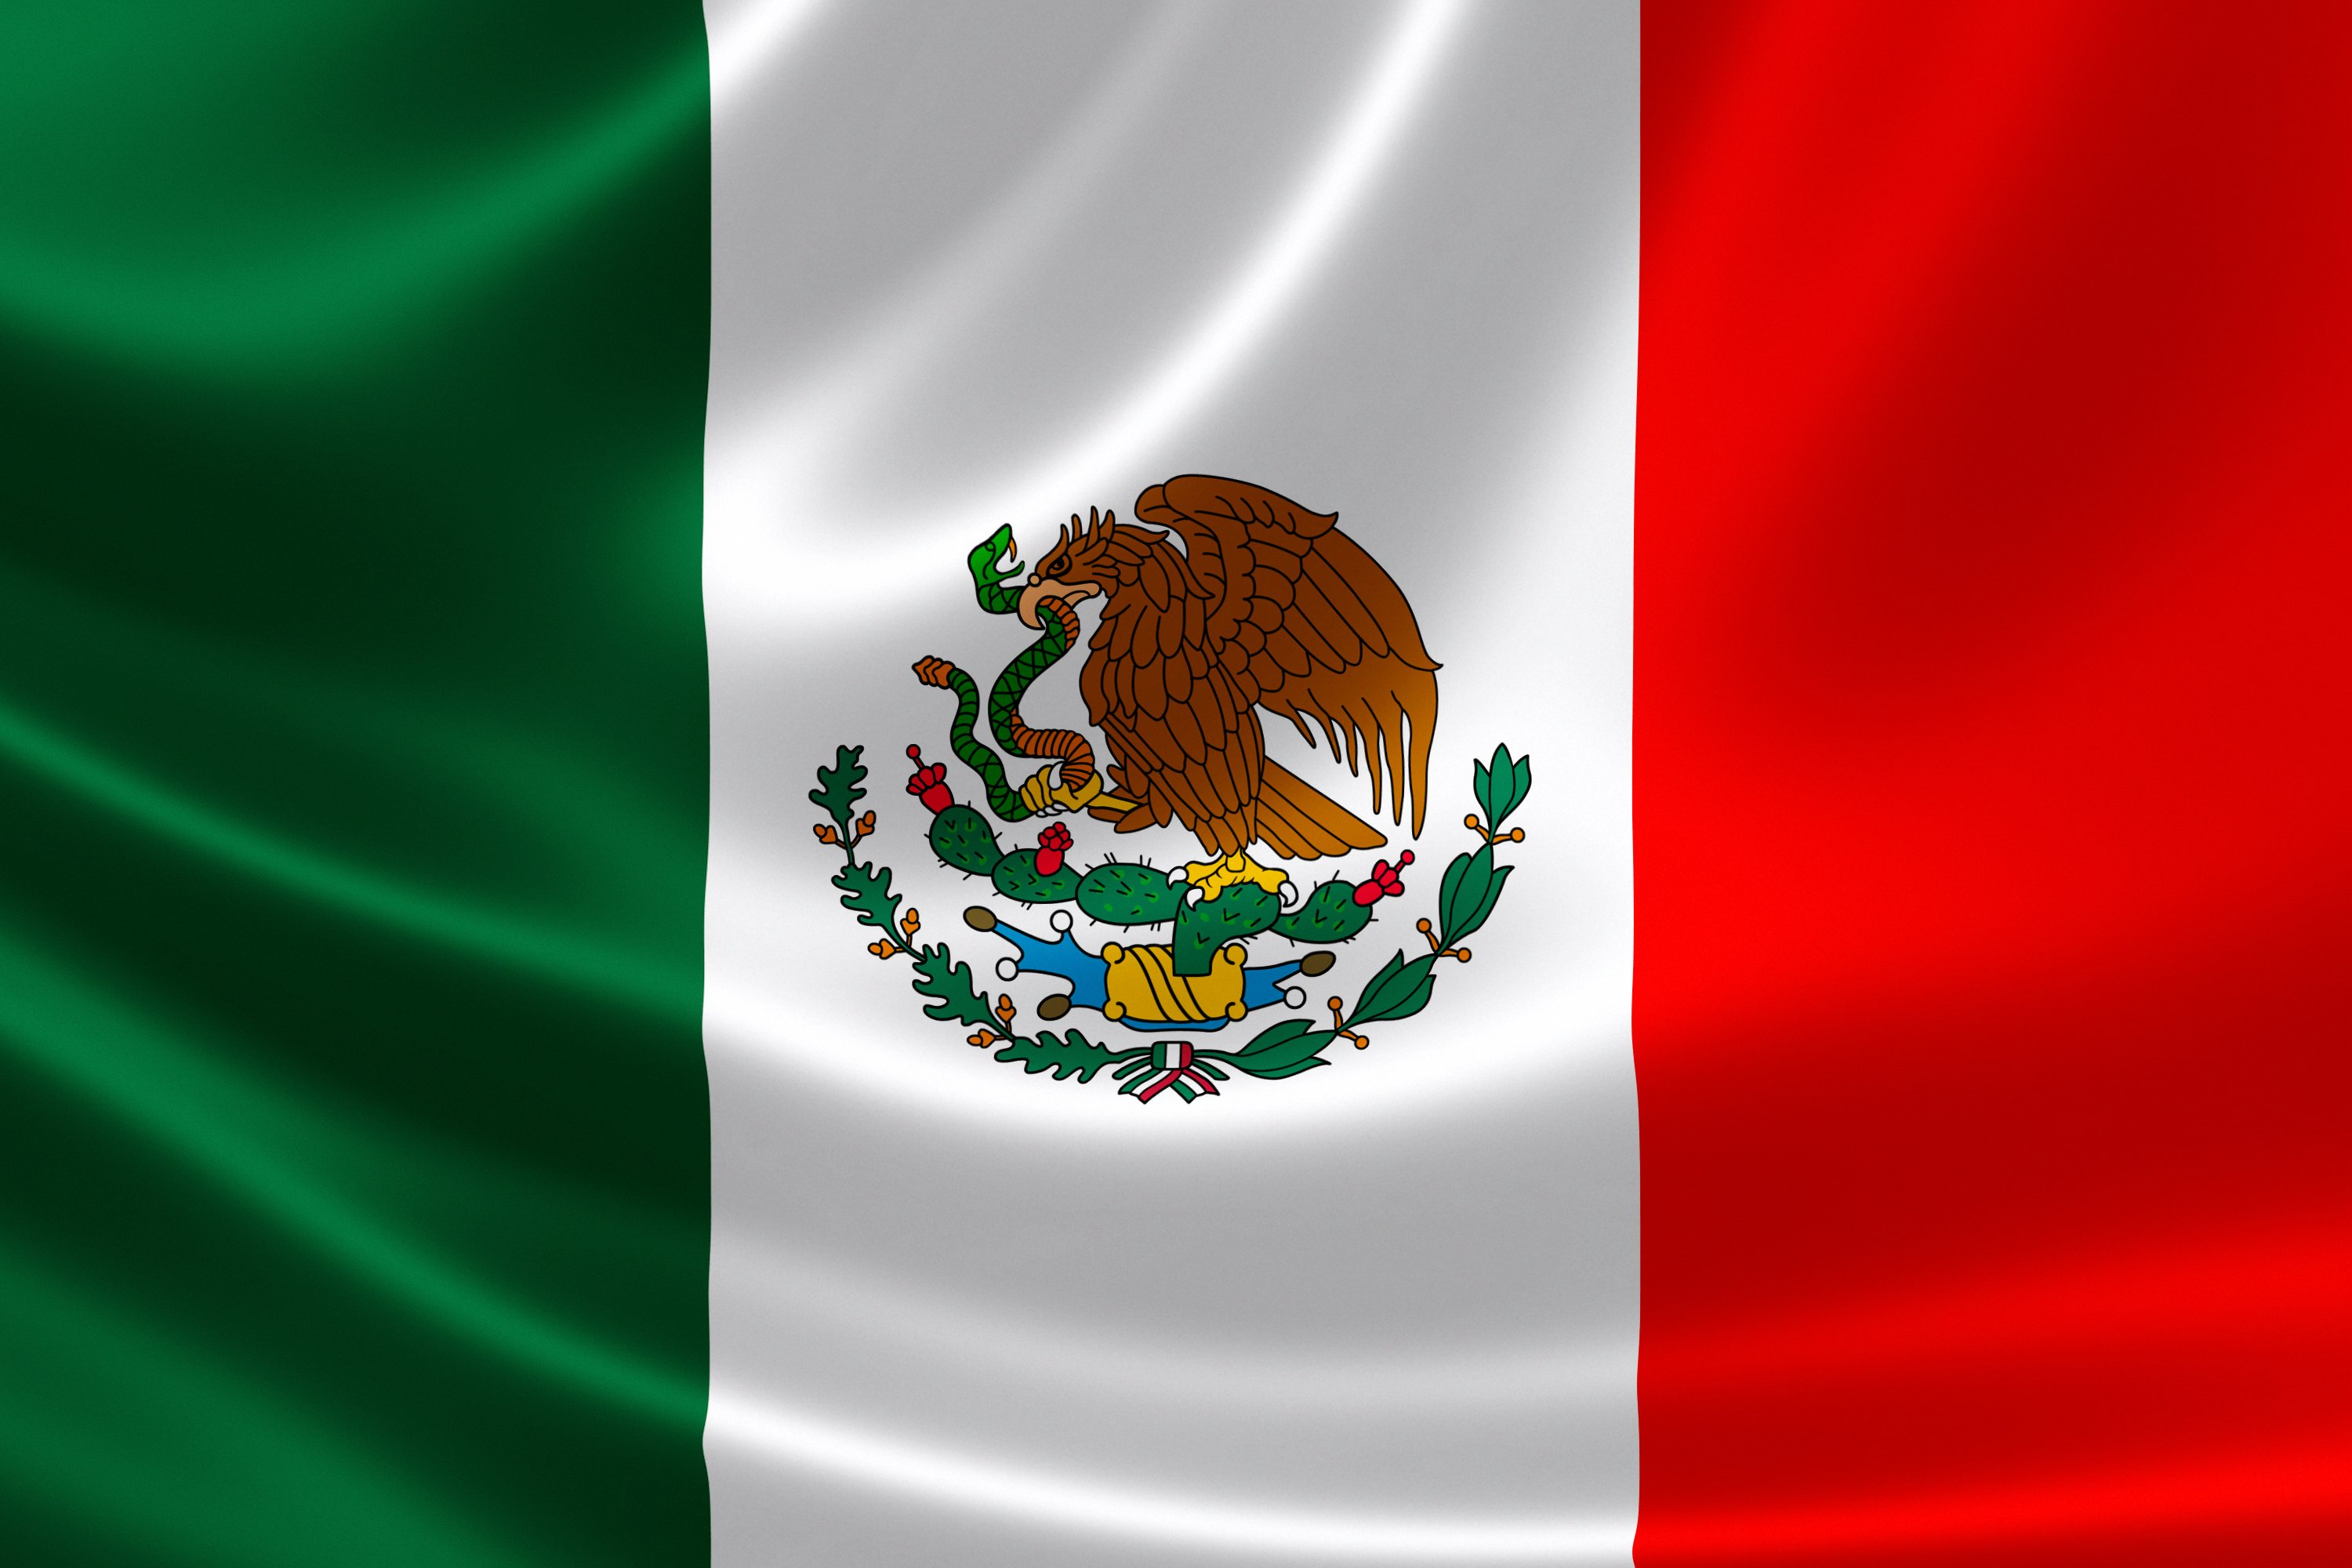 Spanish Style Home Mexico And Canada Collaborate Linguistically Language